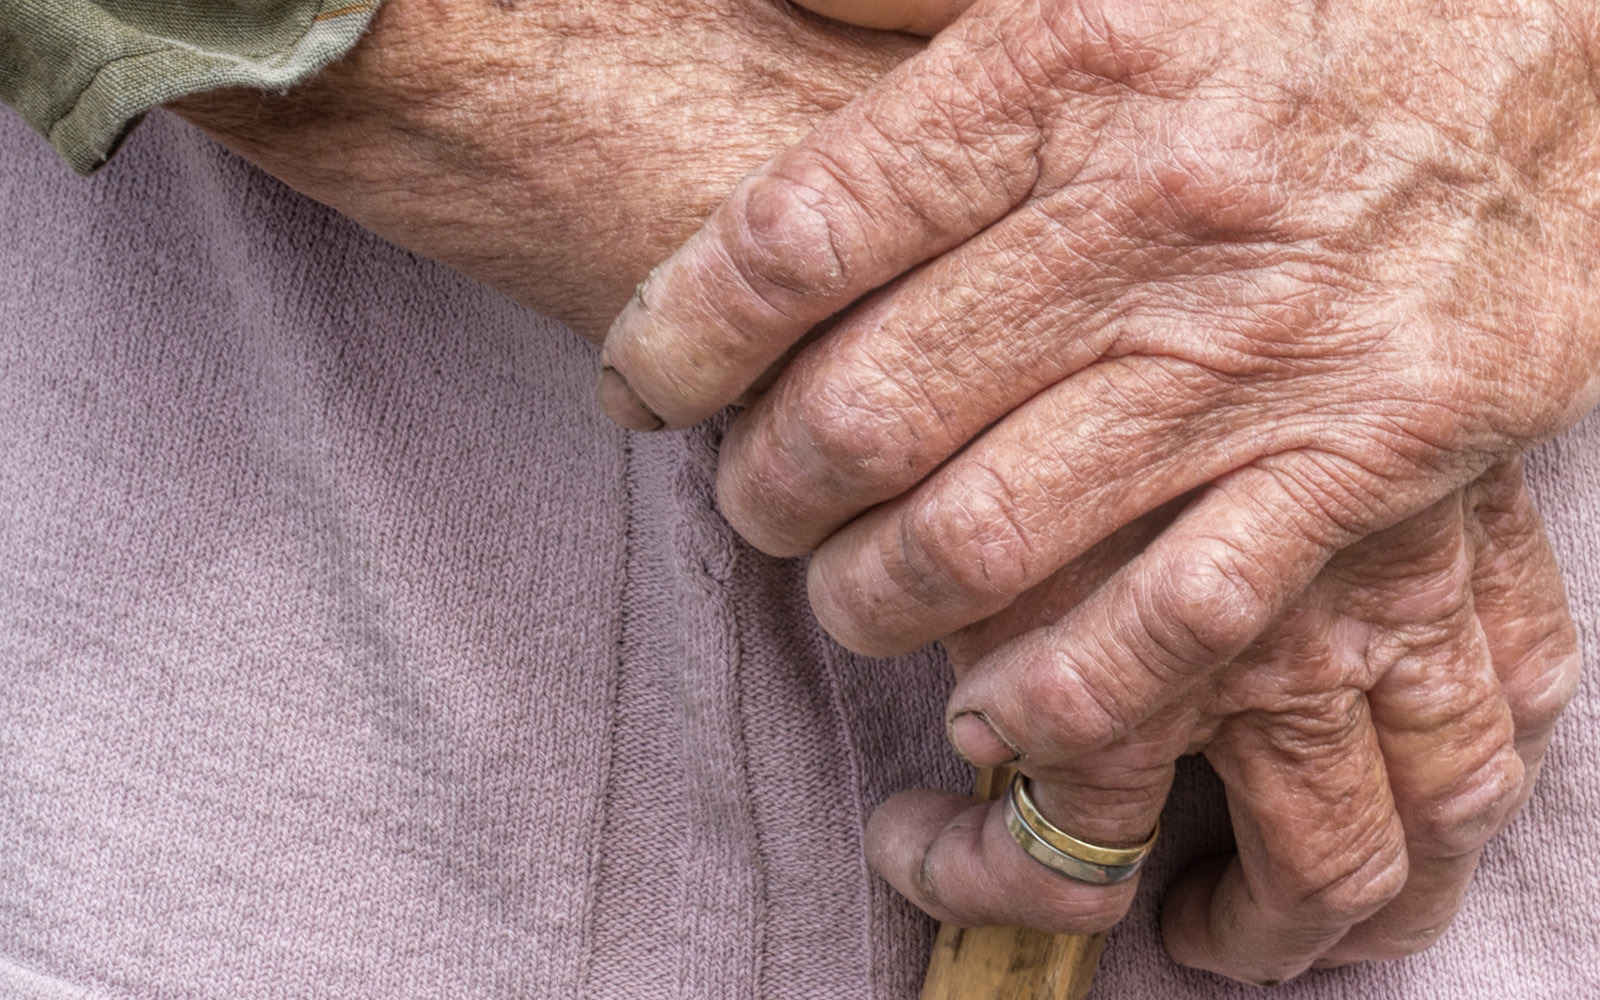 Even a small donation will improve the life of a senior in need. image